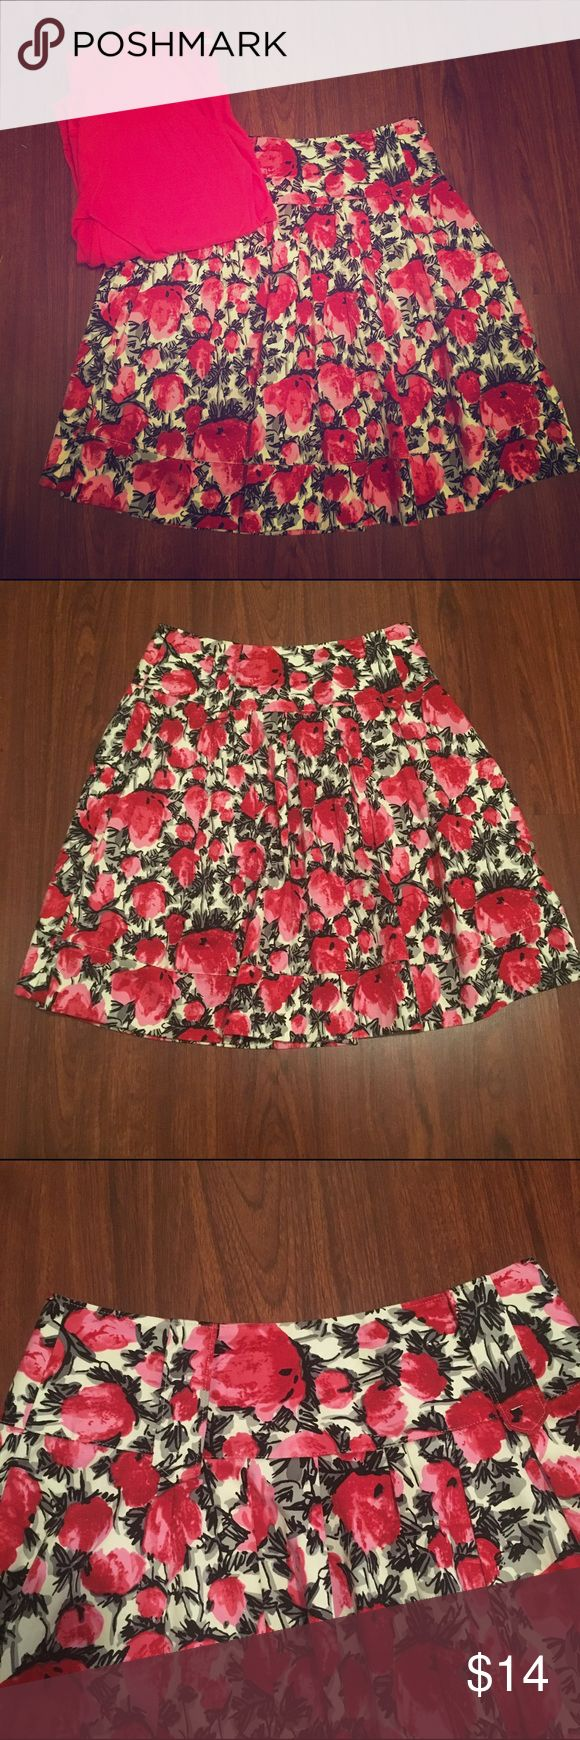 "Floral Skirt by Charlotte Rouse NWOT gorgeous floral skirt; (red, pink, black and white) | Charlotte Rouse | 14"" width; 21"" height 